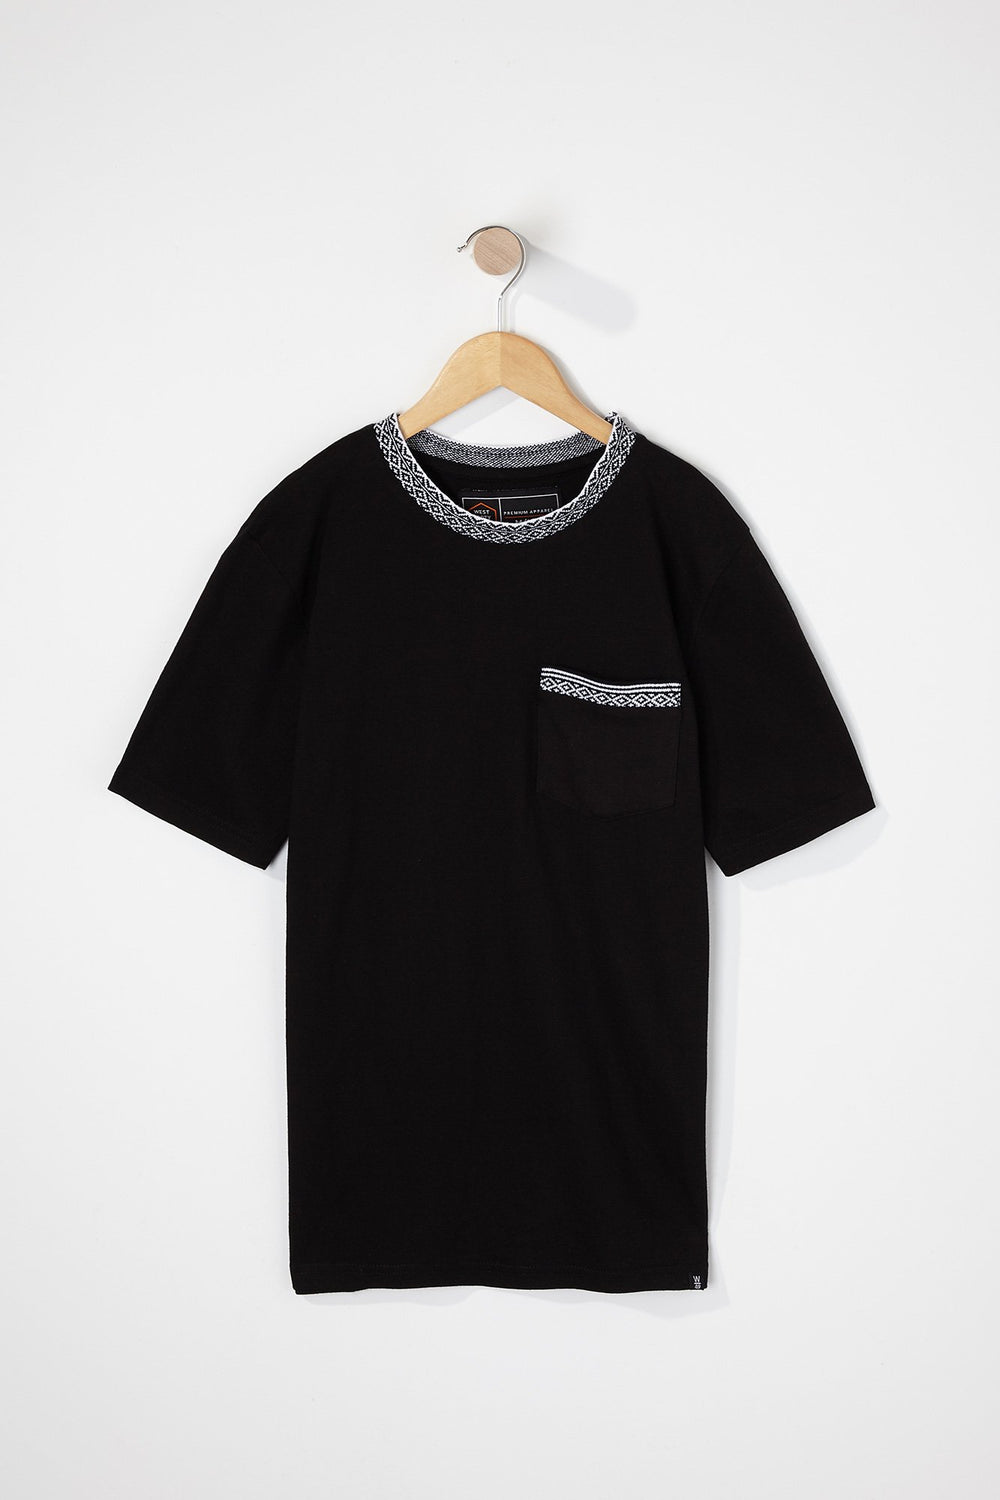 West49 Boys Contrast Pocket And Collar T-Shirt Black